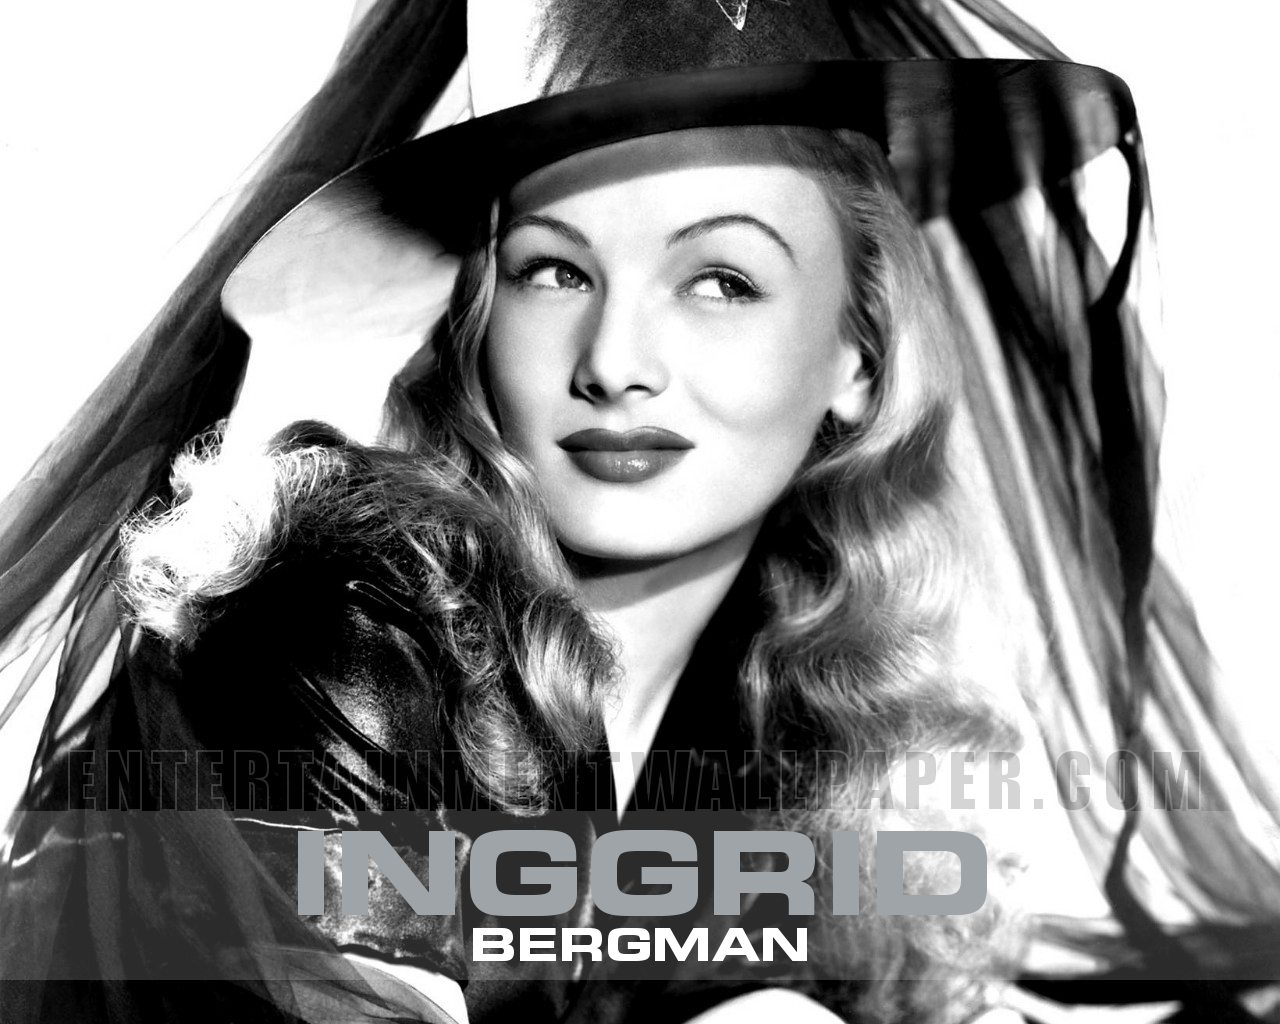 ingrid bergman wallpaper 60027463 size 1280x1024 more ingrid bergman 1280x1024